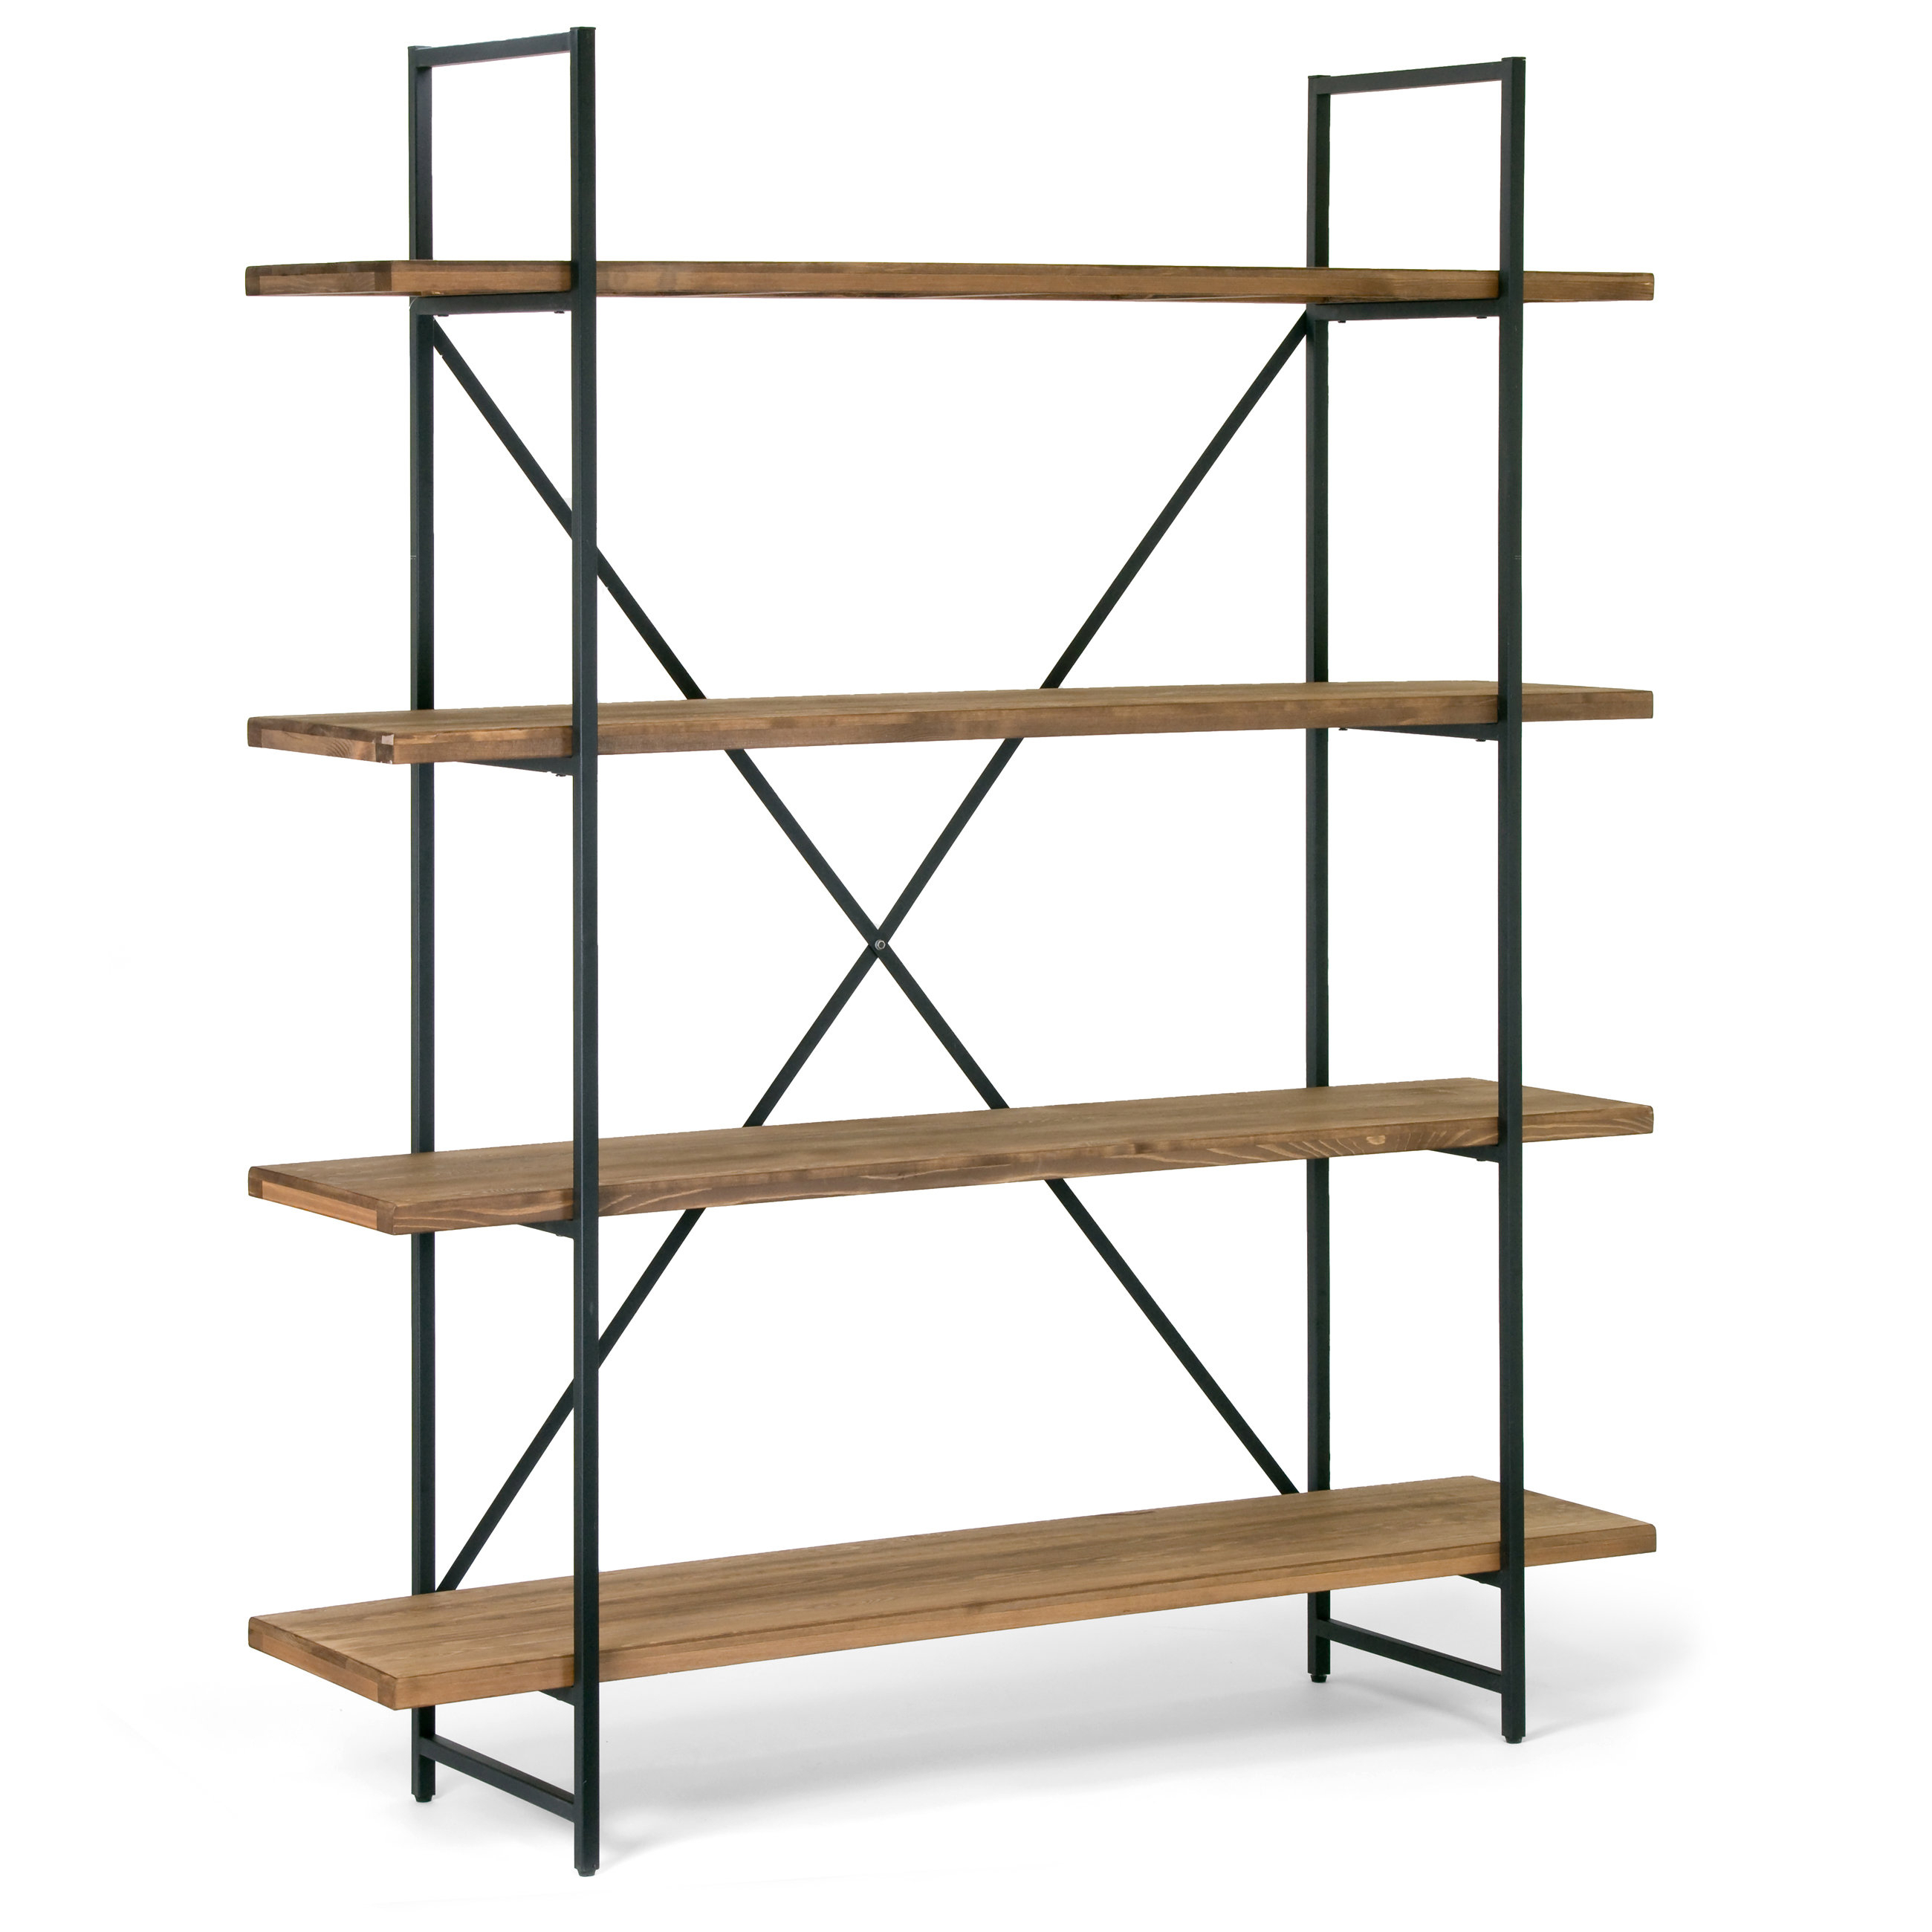 Cifuentes Dual Etagere Bookcases Intended For 2019 Champney Modern Etagere Bookcase (View 9 of 20)